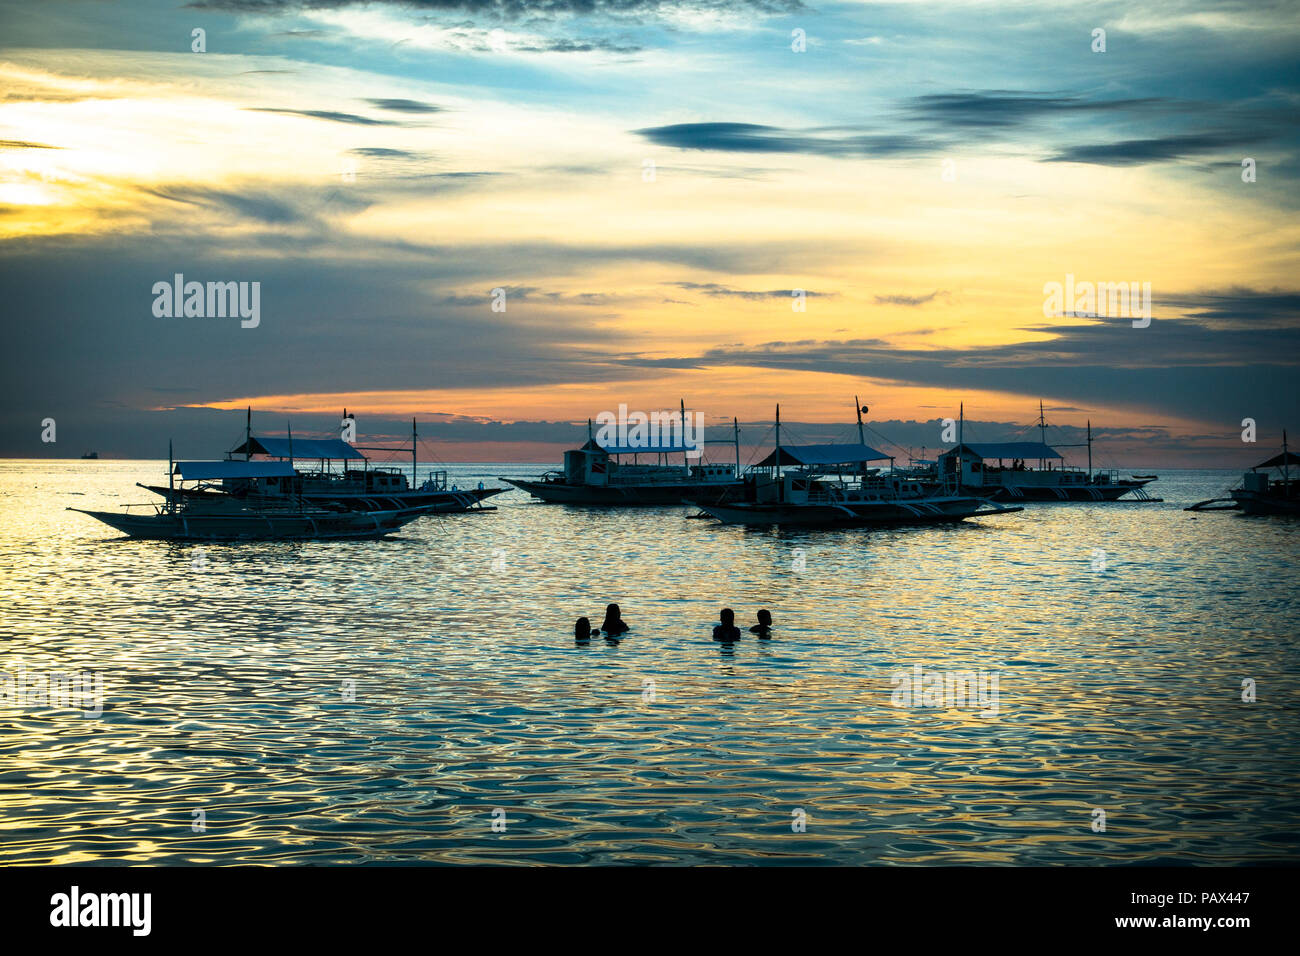 Silhouette of four tourists swimming and playing in the sea near fishing boats at sunset - Malapascua Island, Cebu - Philippines Stock Photo